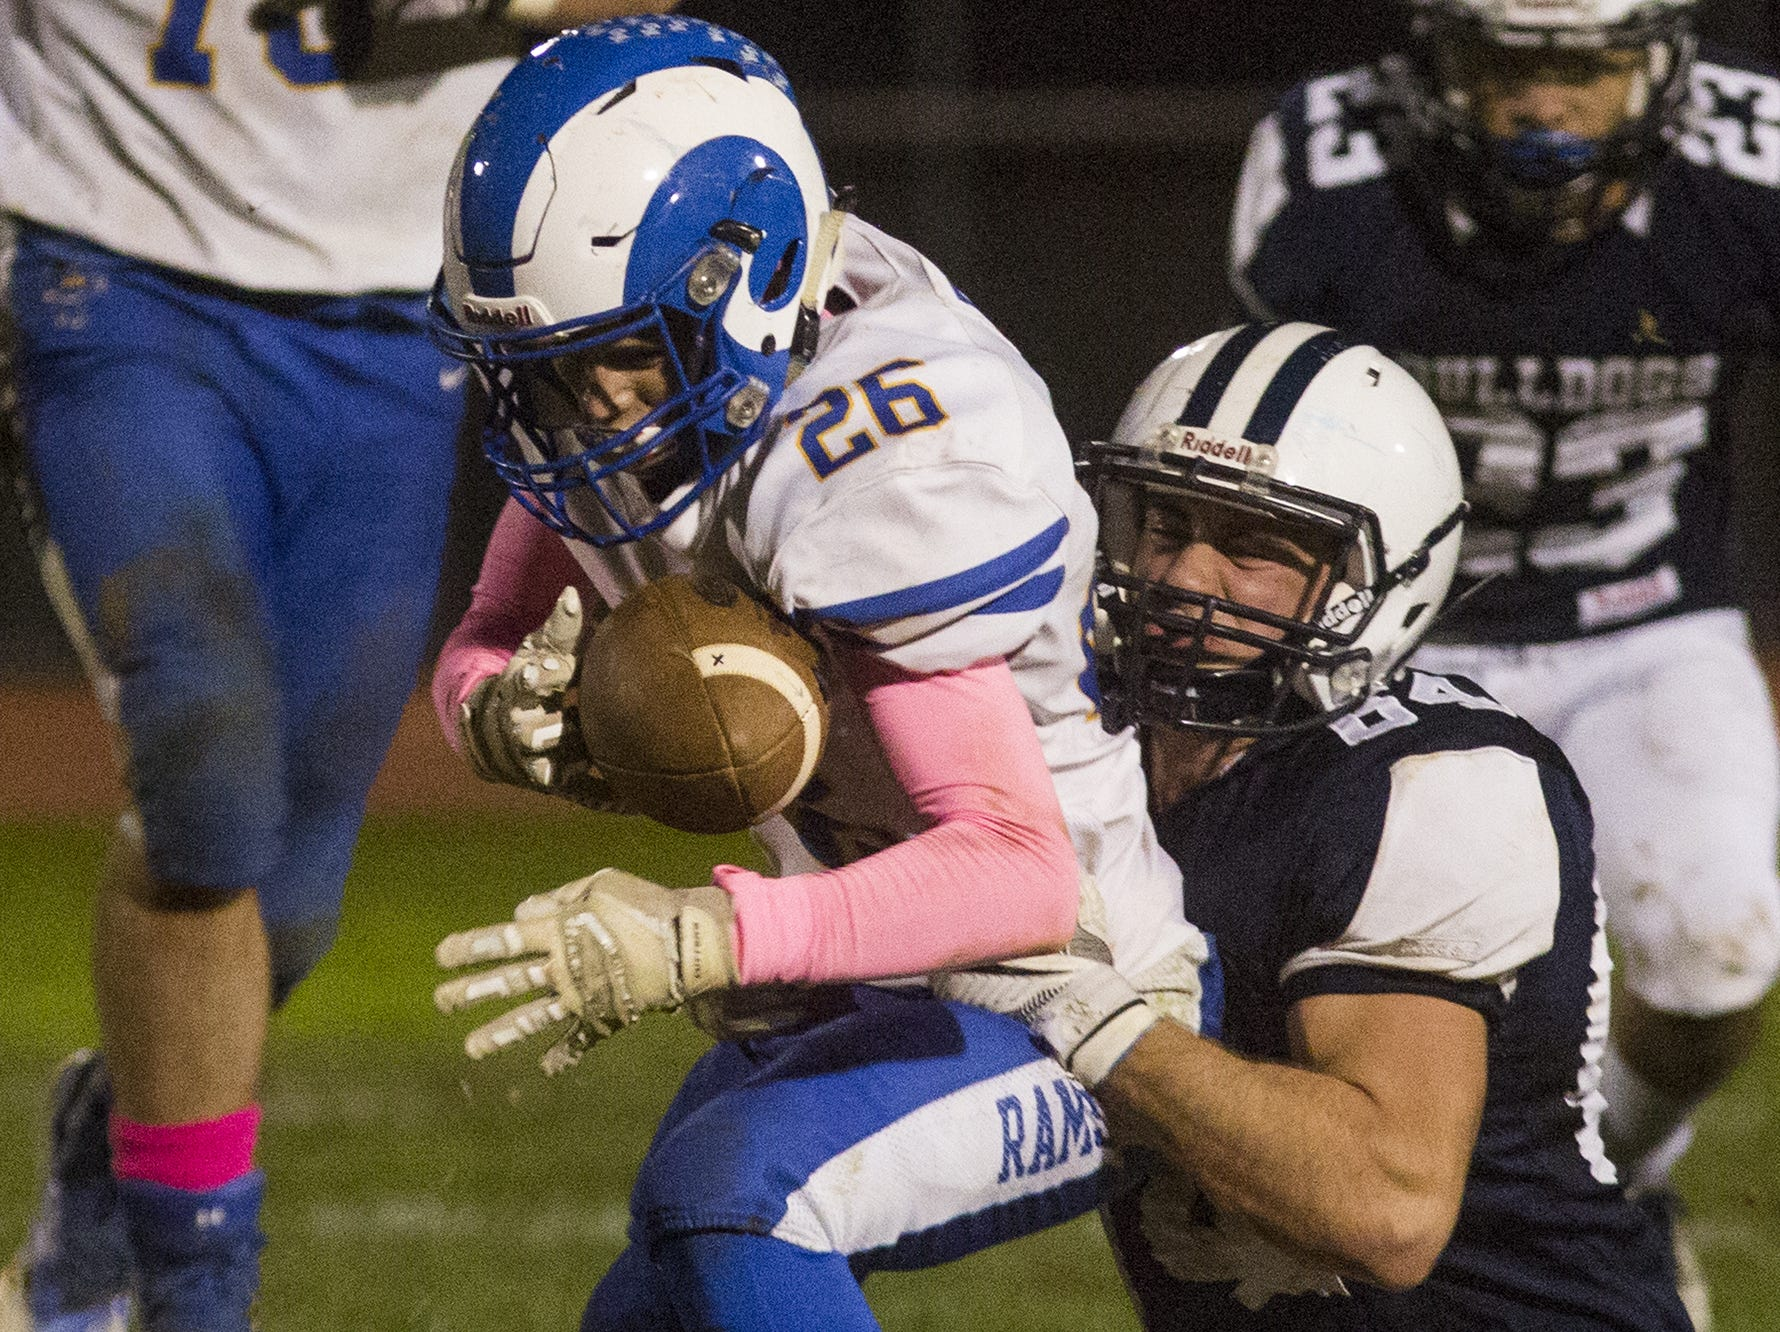 Kennard-Dale's Josh Vipperman, left, is tackled by West York's Austin Coy. West York defeats Kennard-Dale 32-21 in football at West York Area High School in West York, Friday, October 12, 2018.